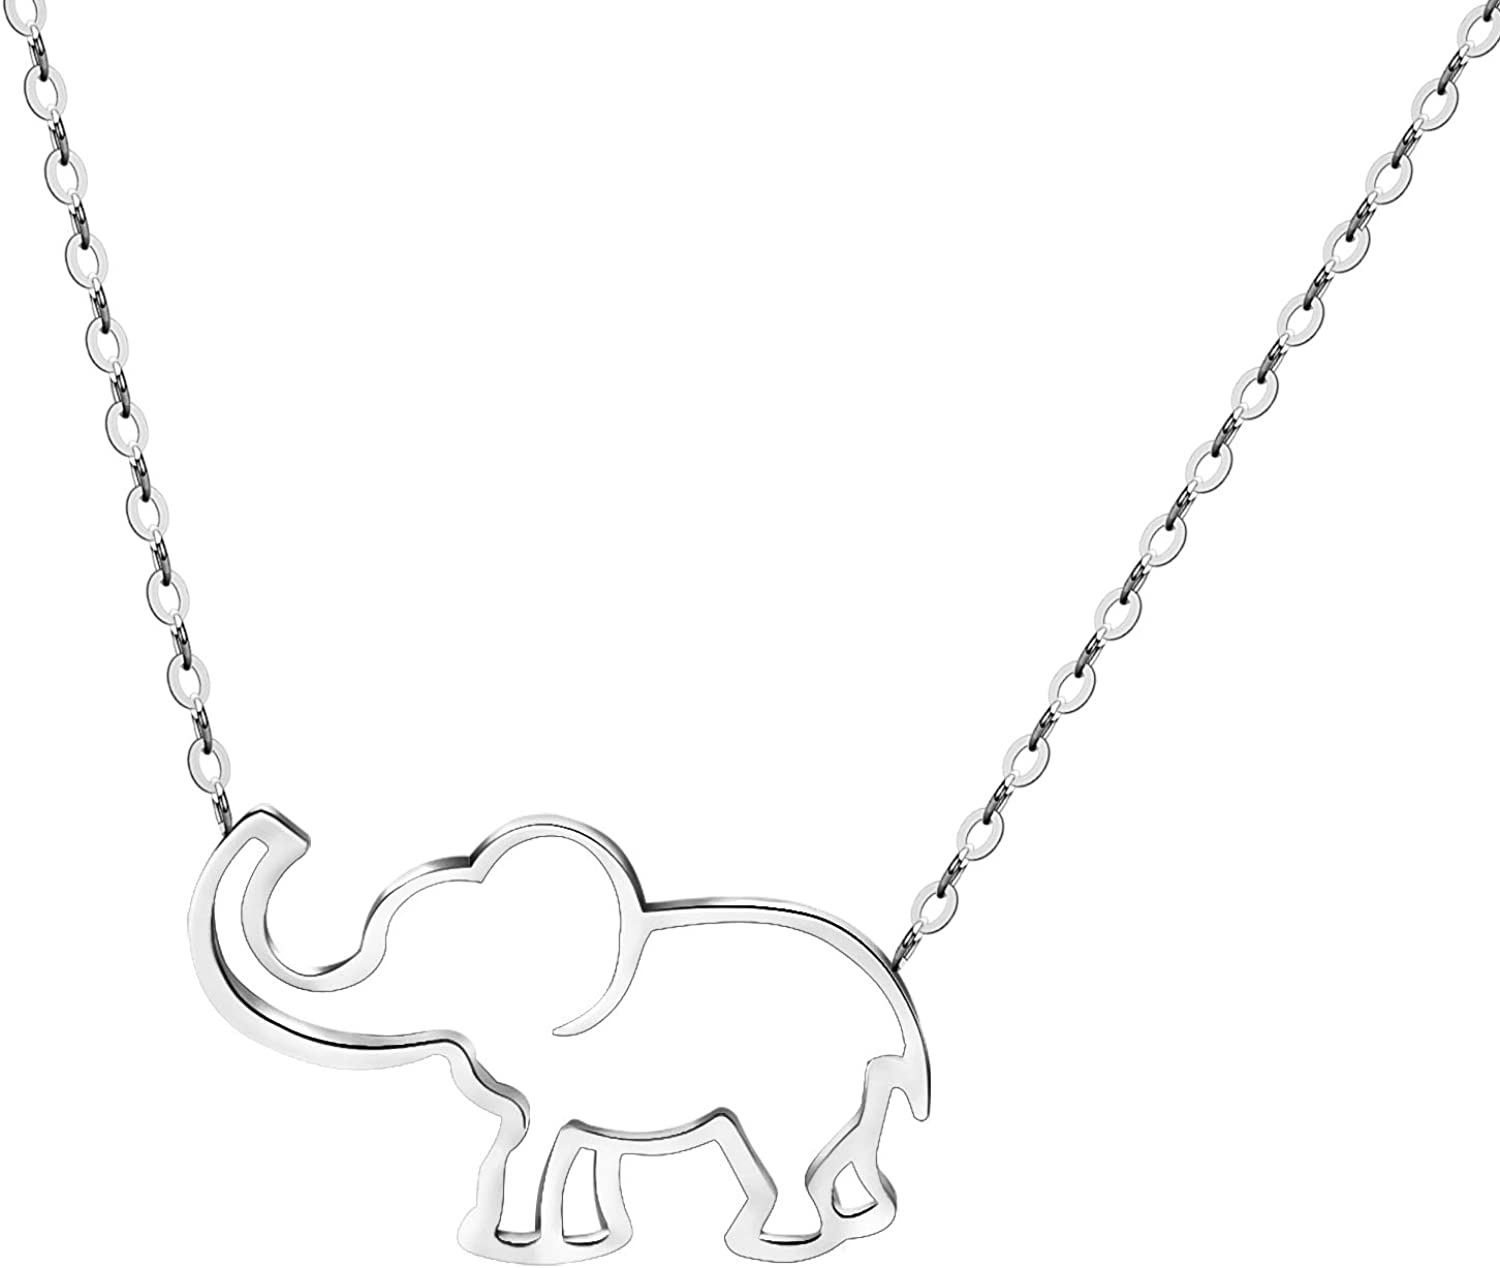 Good Luck Elephant Jewelry Necklace Charm Pendant Necklaces for Women and Teen Girls Birthday Gifts ,Mother's Gift VAttract Adjustable 16 Inch